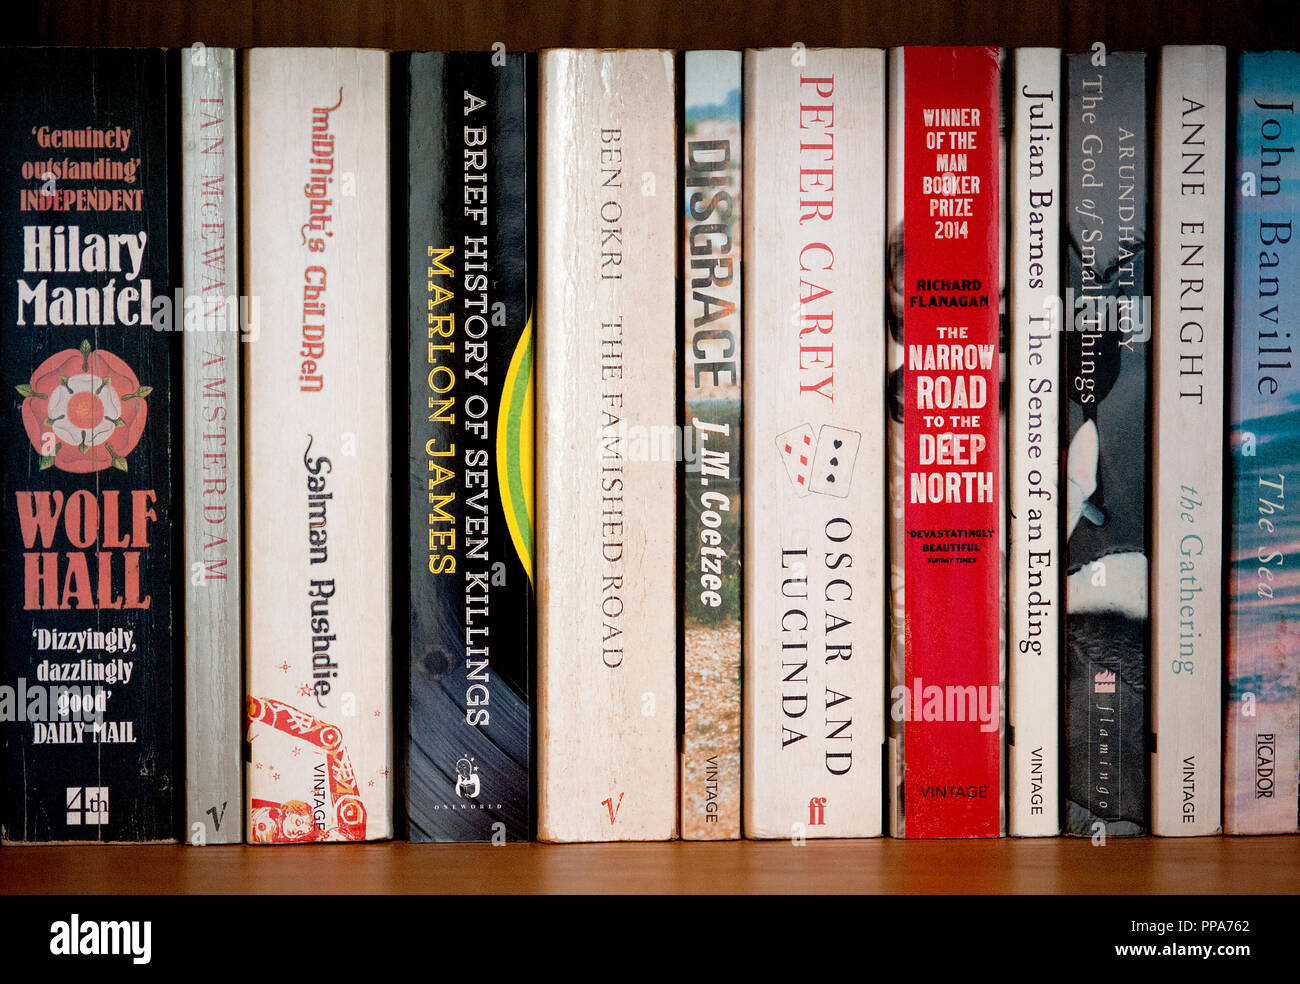 Man Booker Prize winners from past years including the famous novels Midnight's Children, The God of Small Things and Wolf Hall. - Stock Image